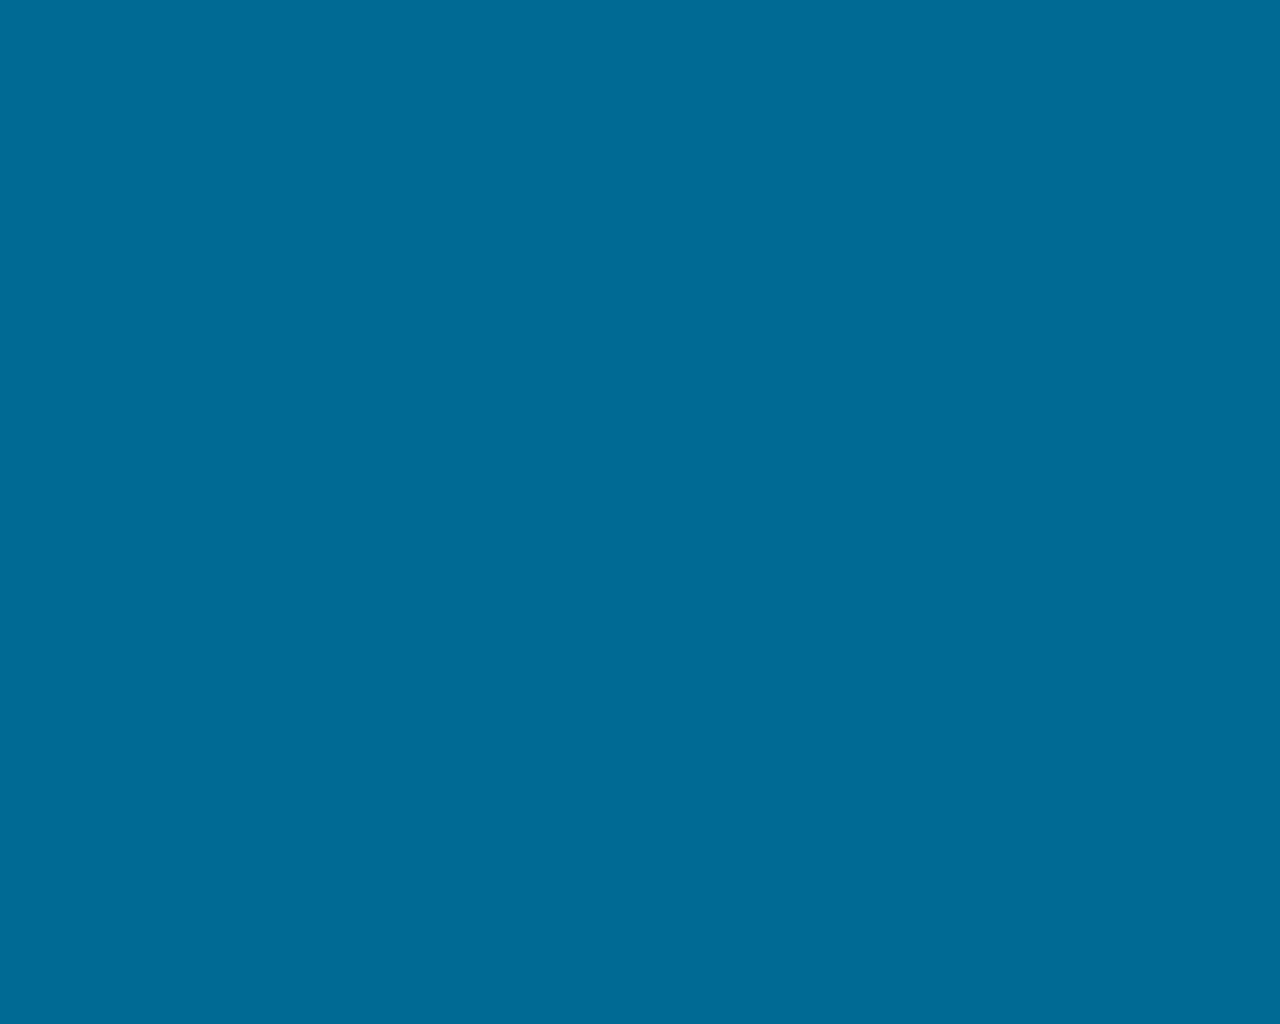 1280x1024 Sea Blue Solid Color Background